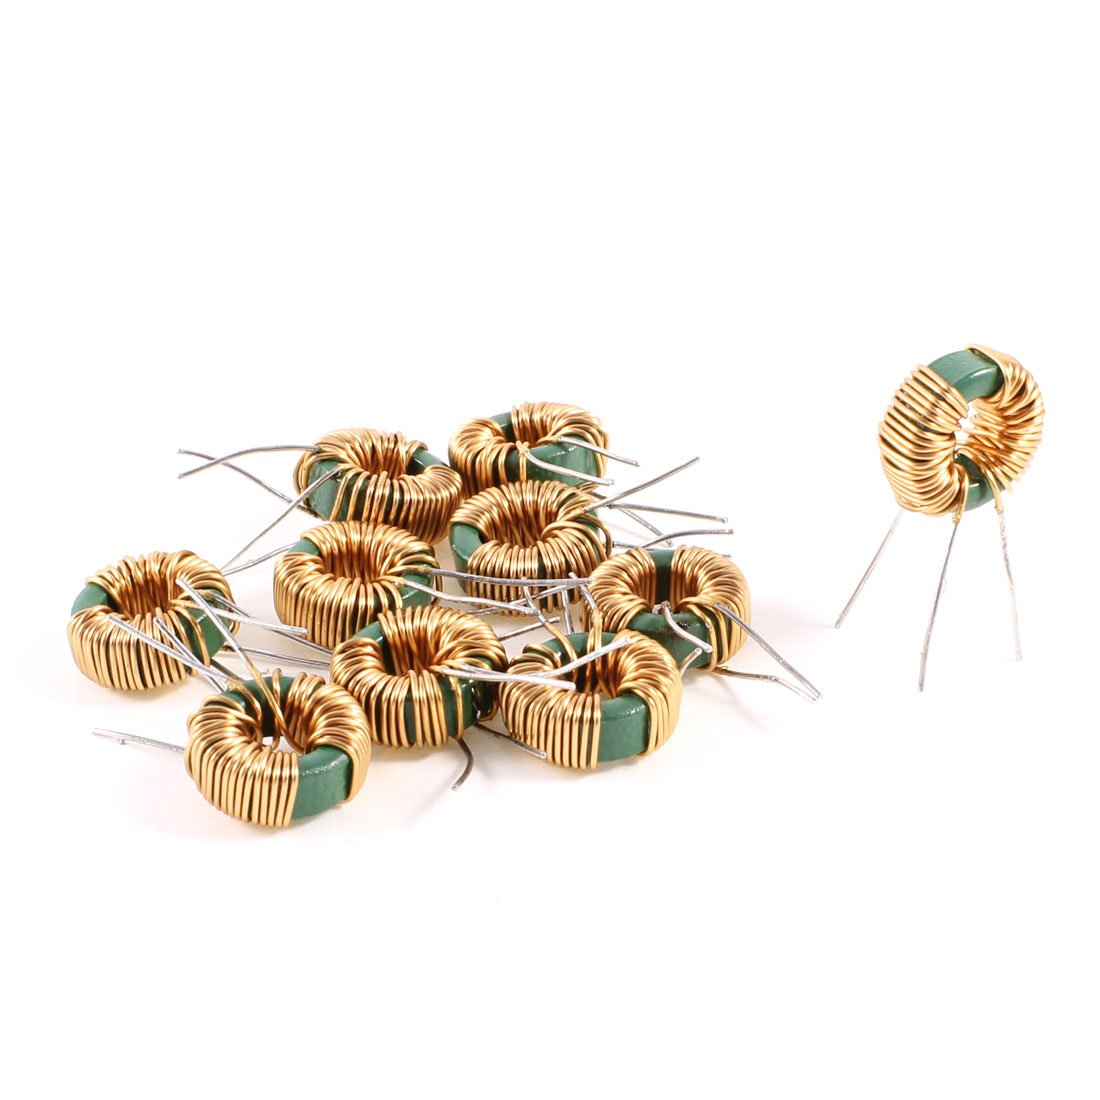 10 Pcs Toroid Core Common Mode Inductor Choke 2MH 30mOhm 2A Coil